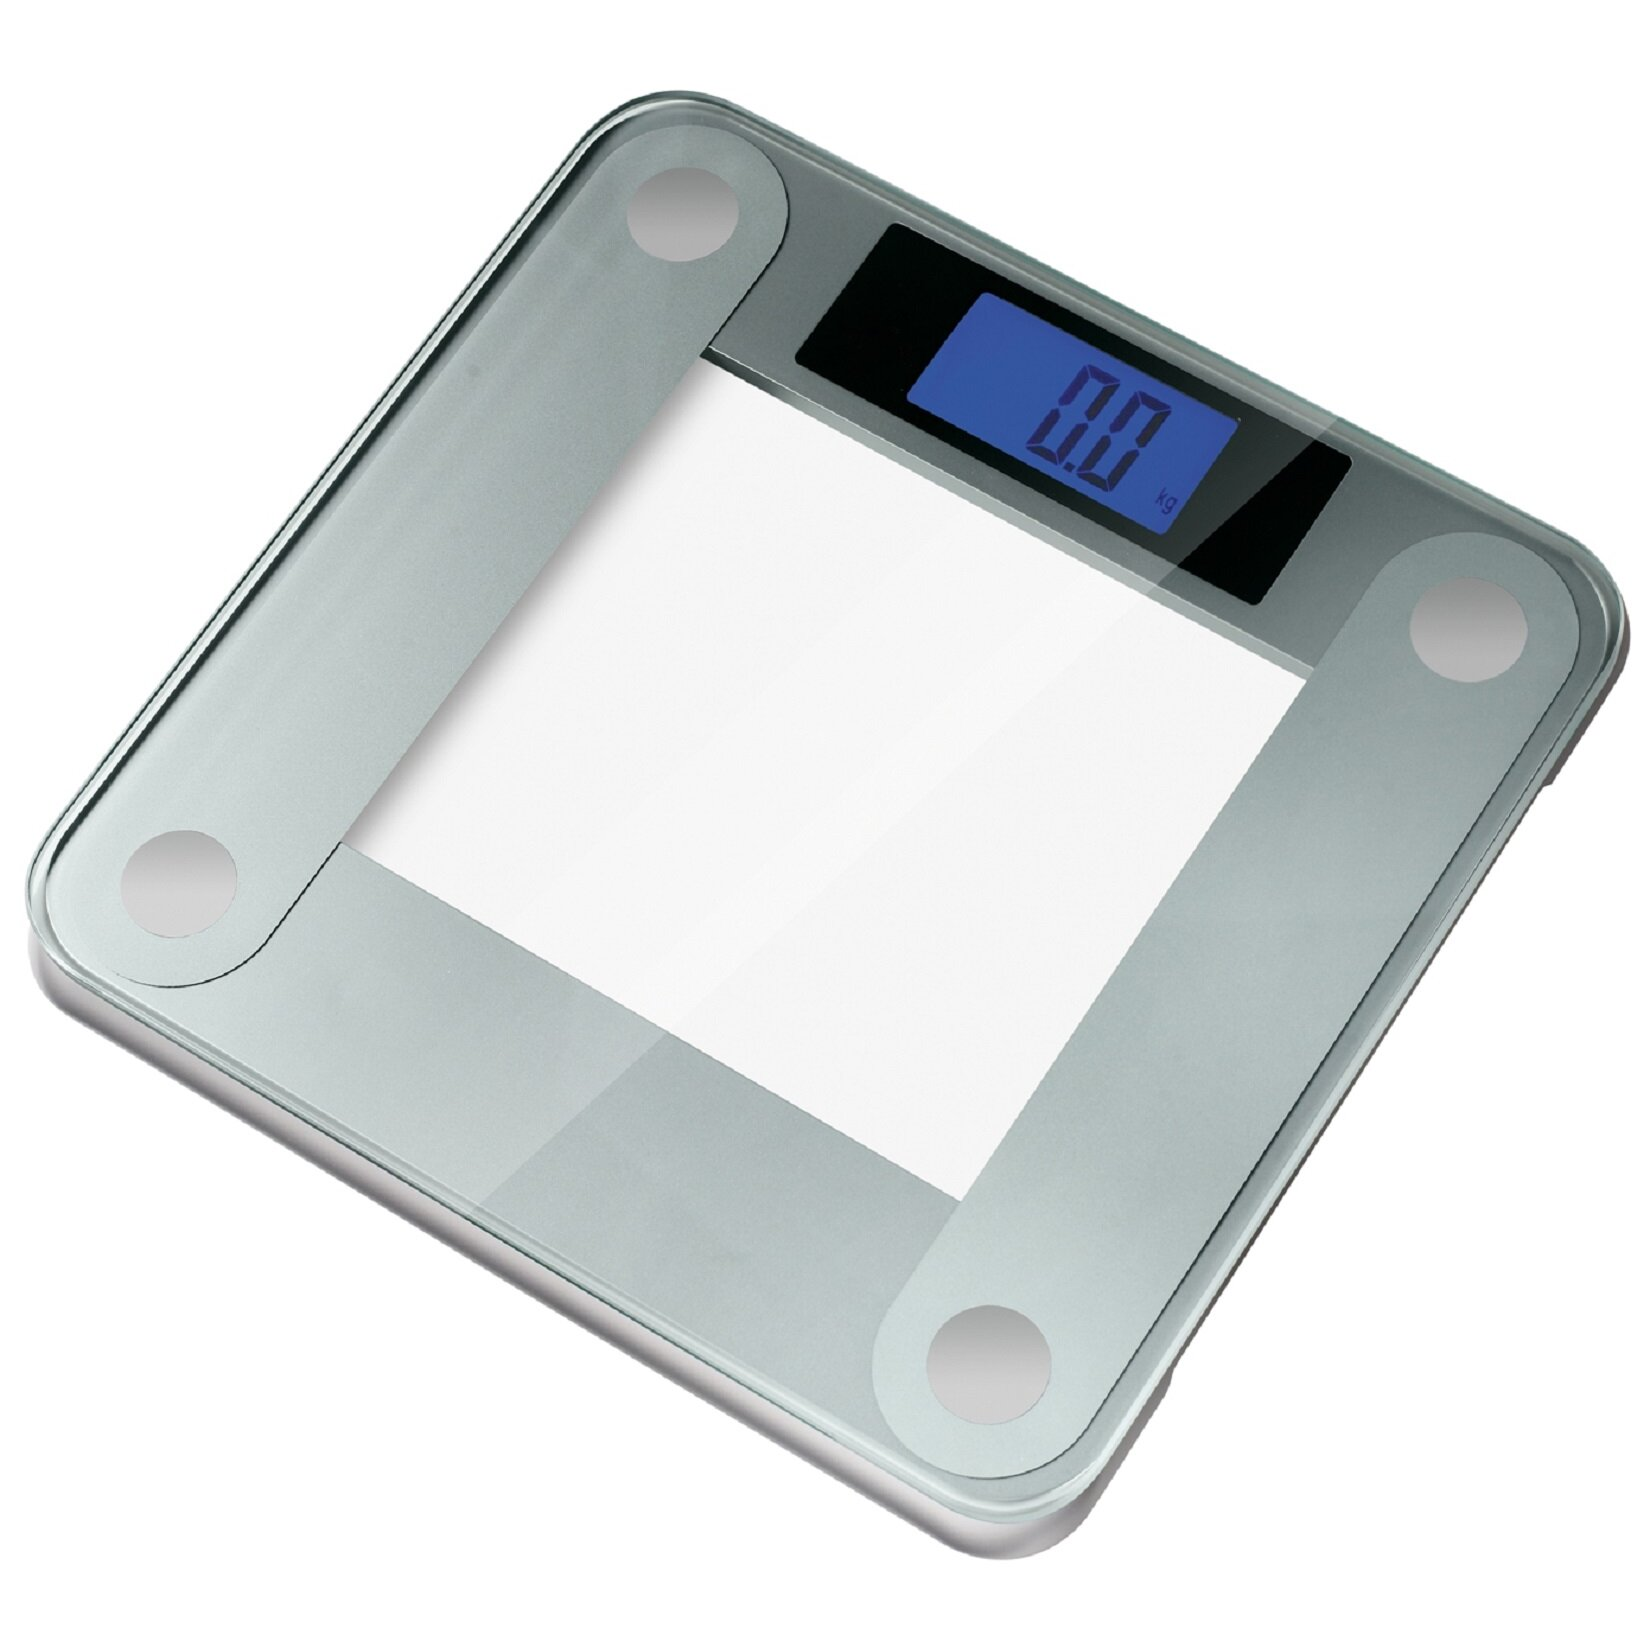 Ozeri Precision Ii Digital Bathroom Scale 440 Lbs Capacity With Weight Change Detection